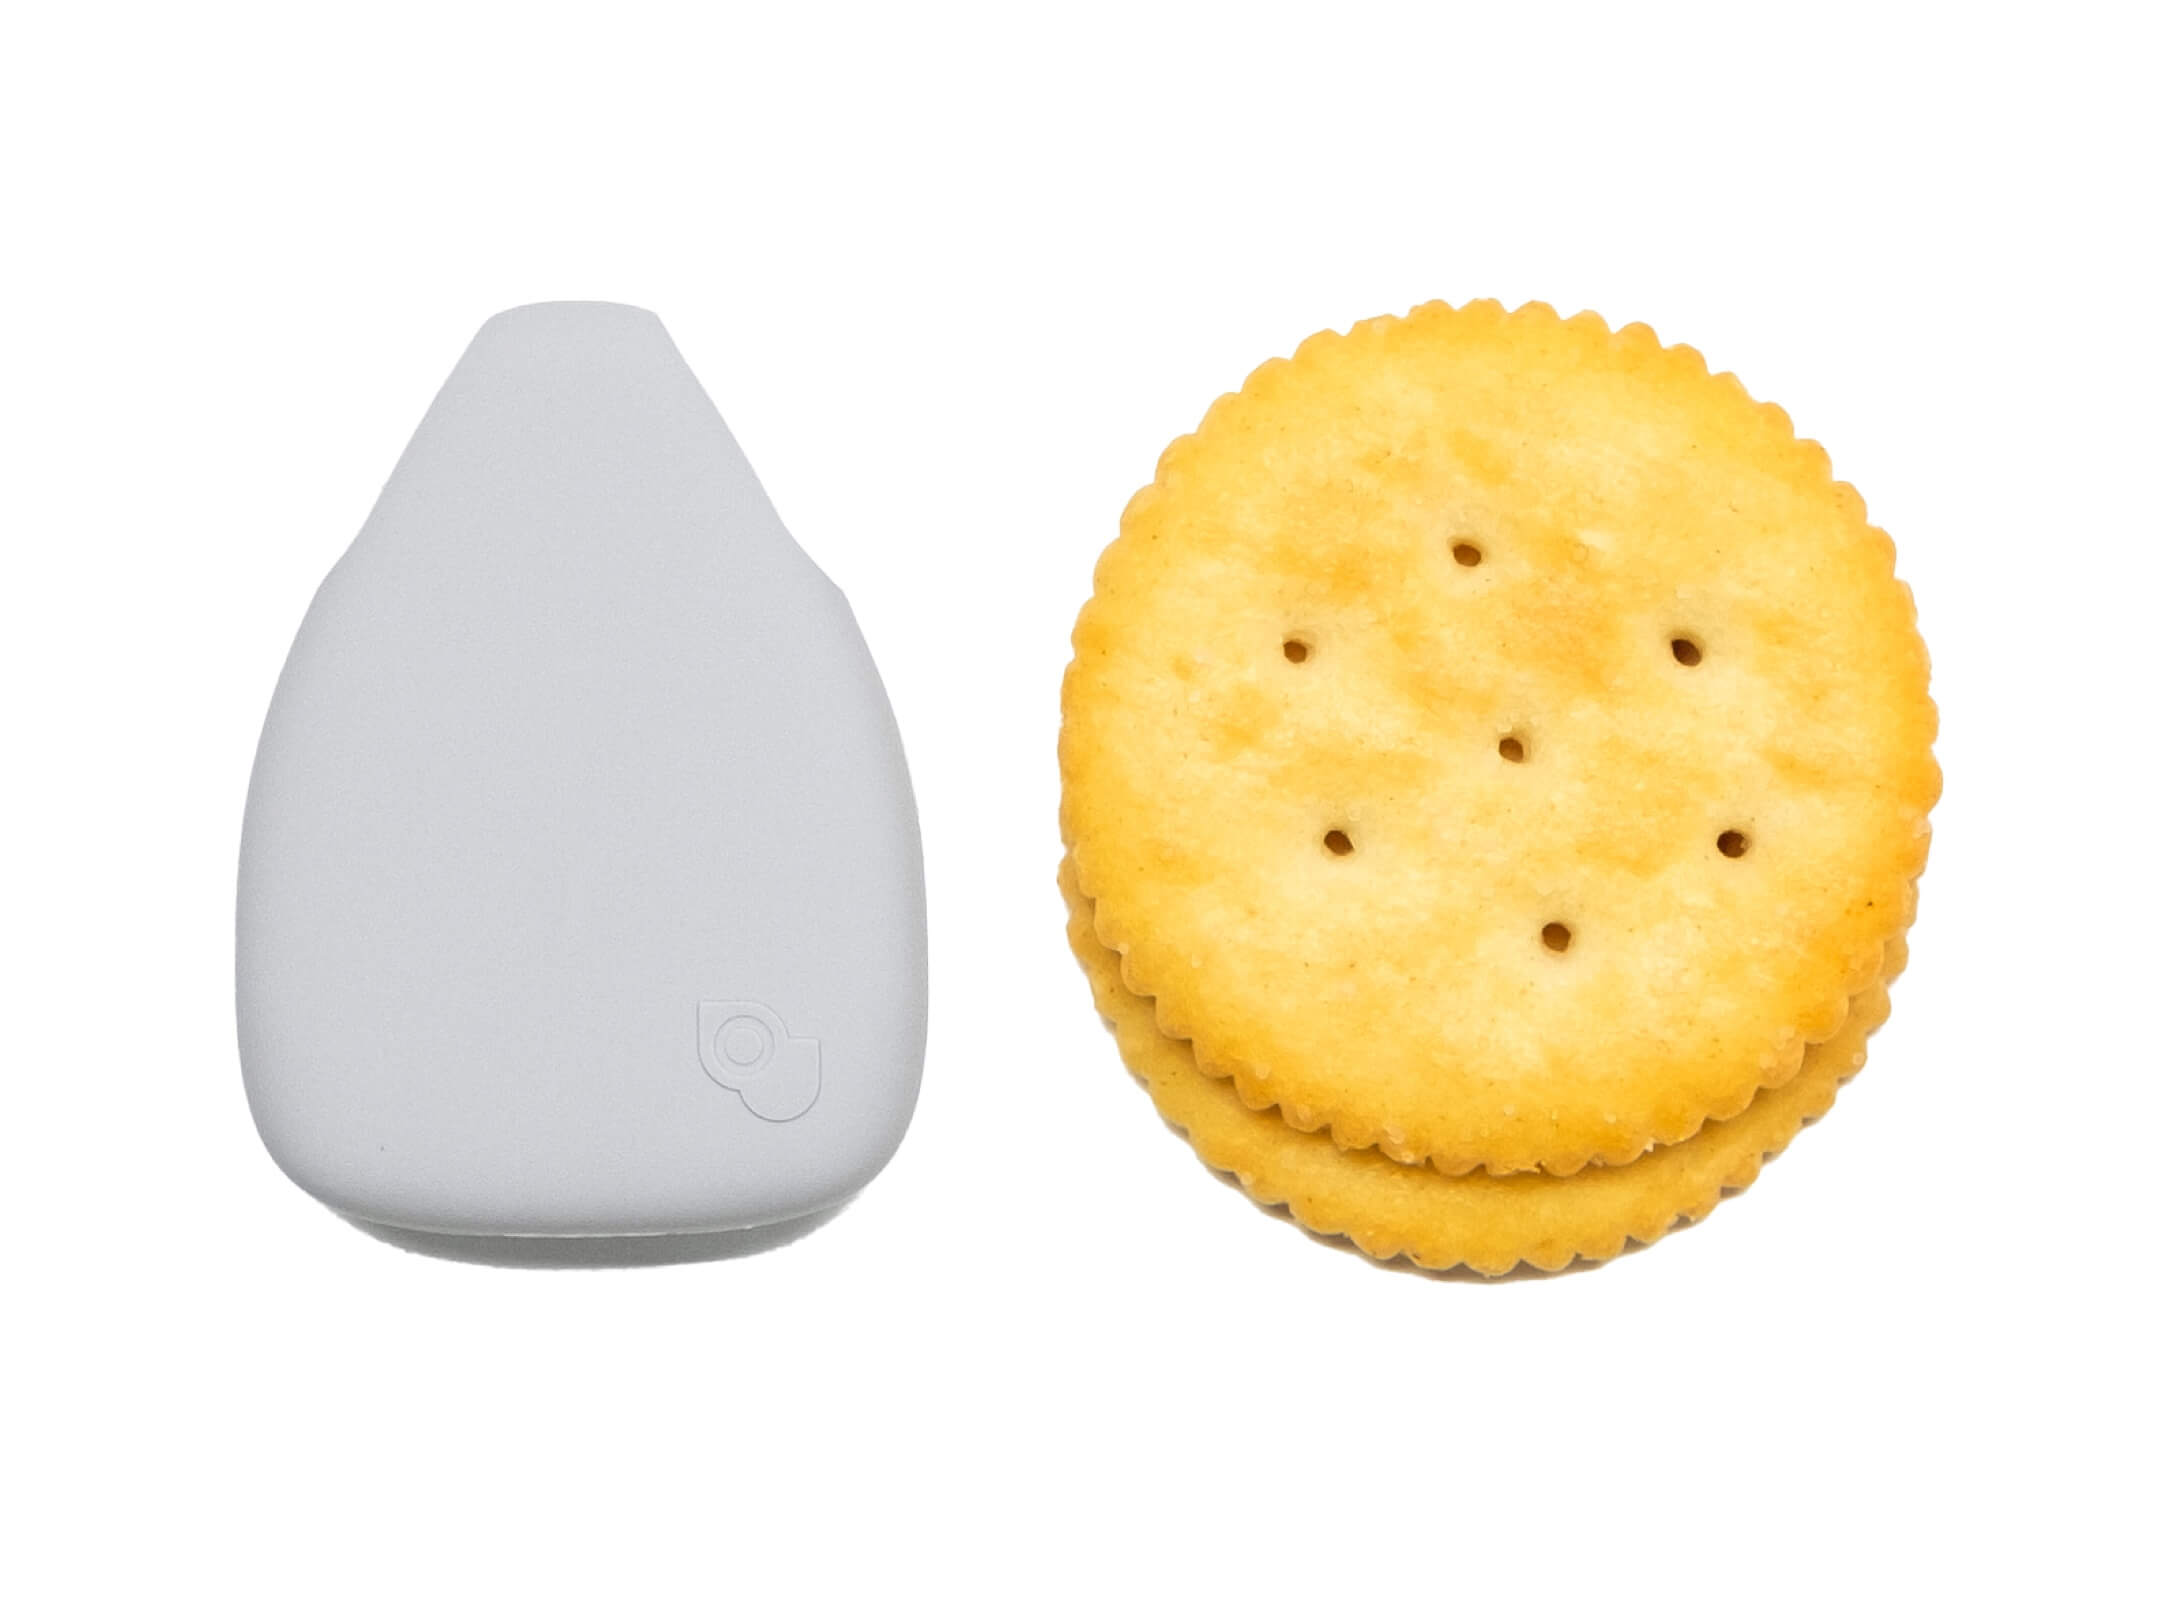 Jiobit is as small as a ritz cracker